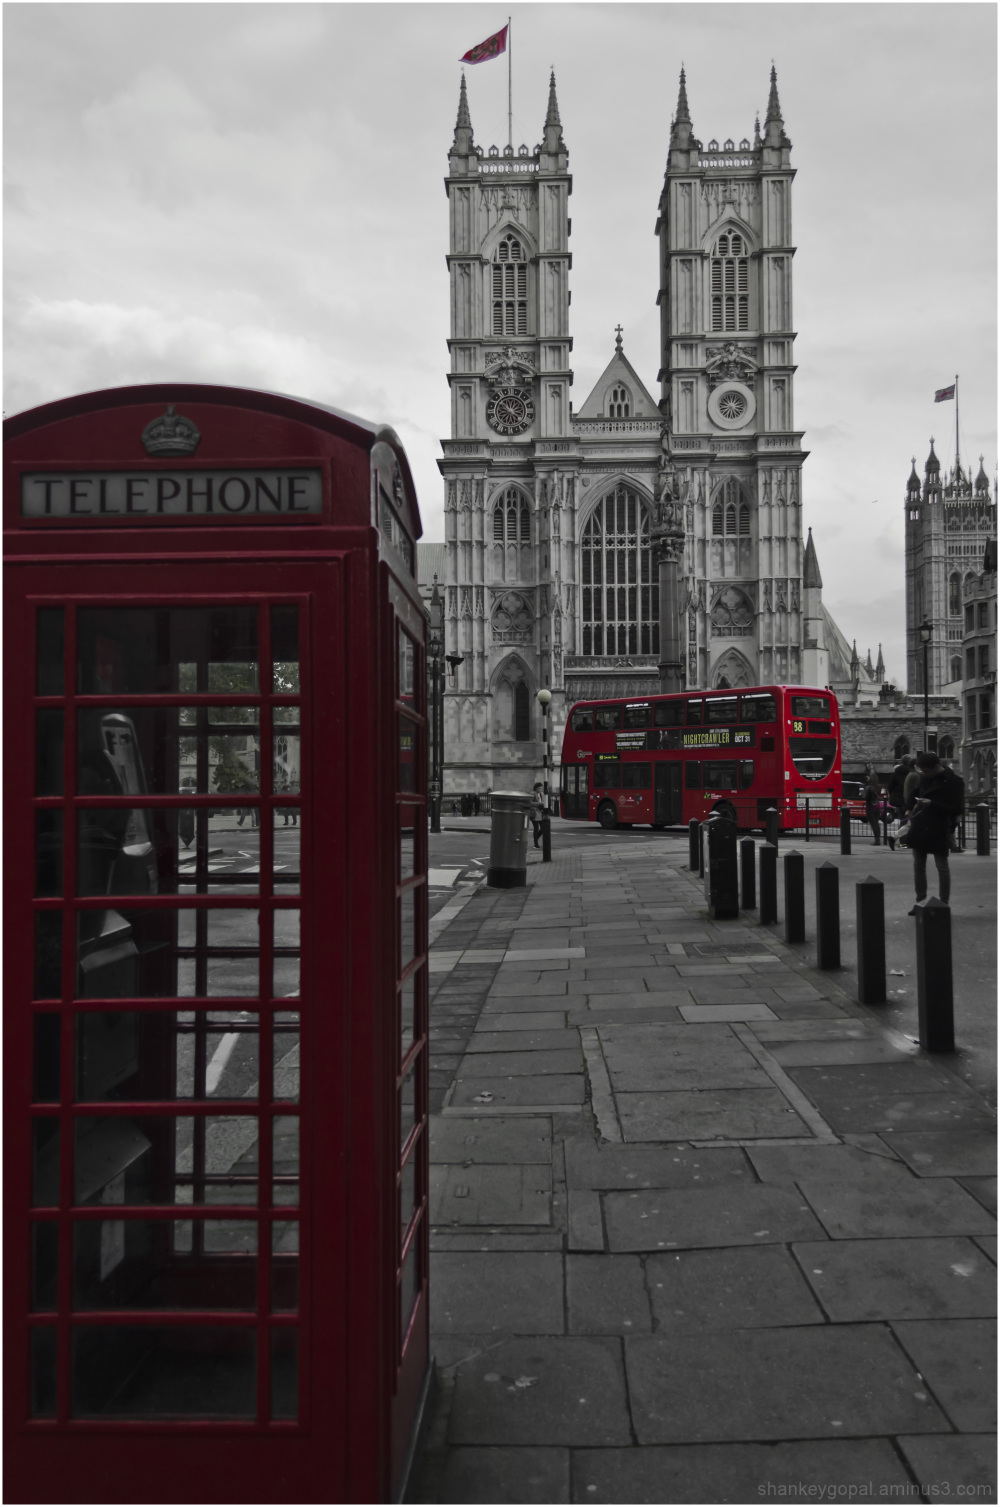 The icons of London